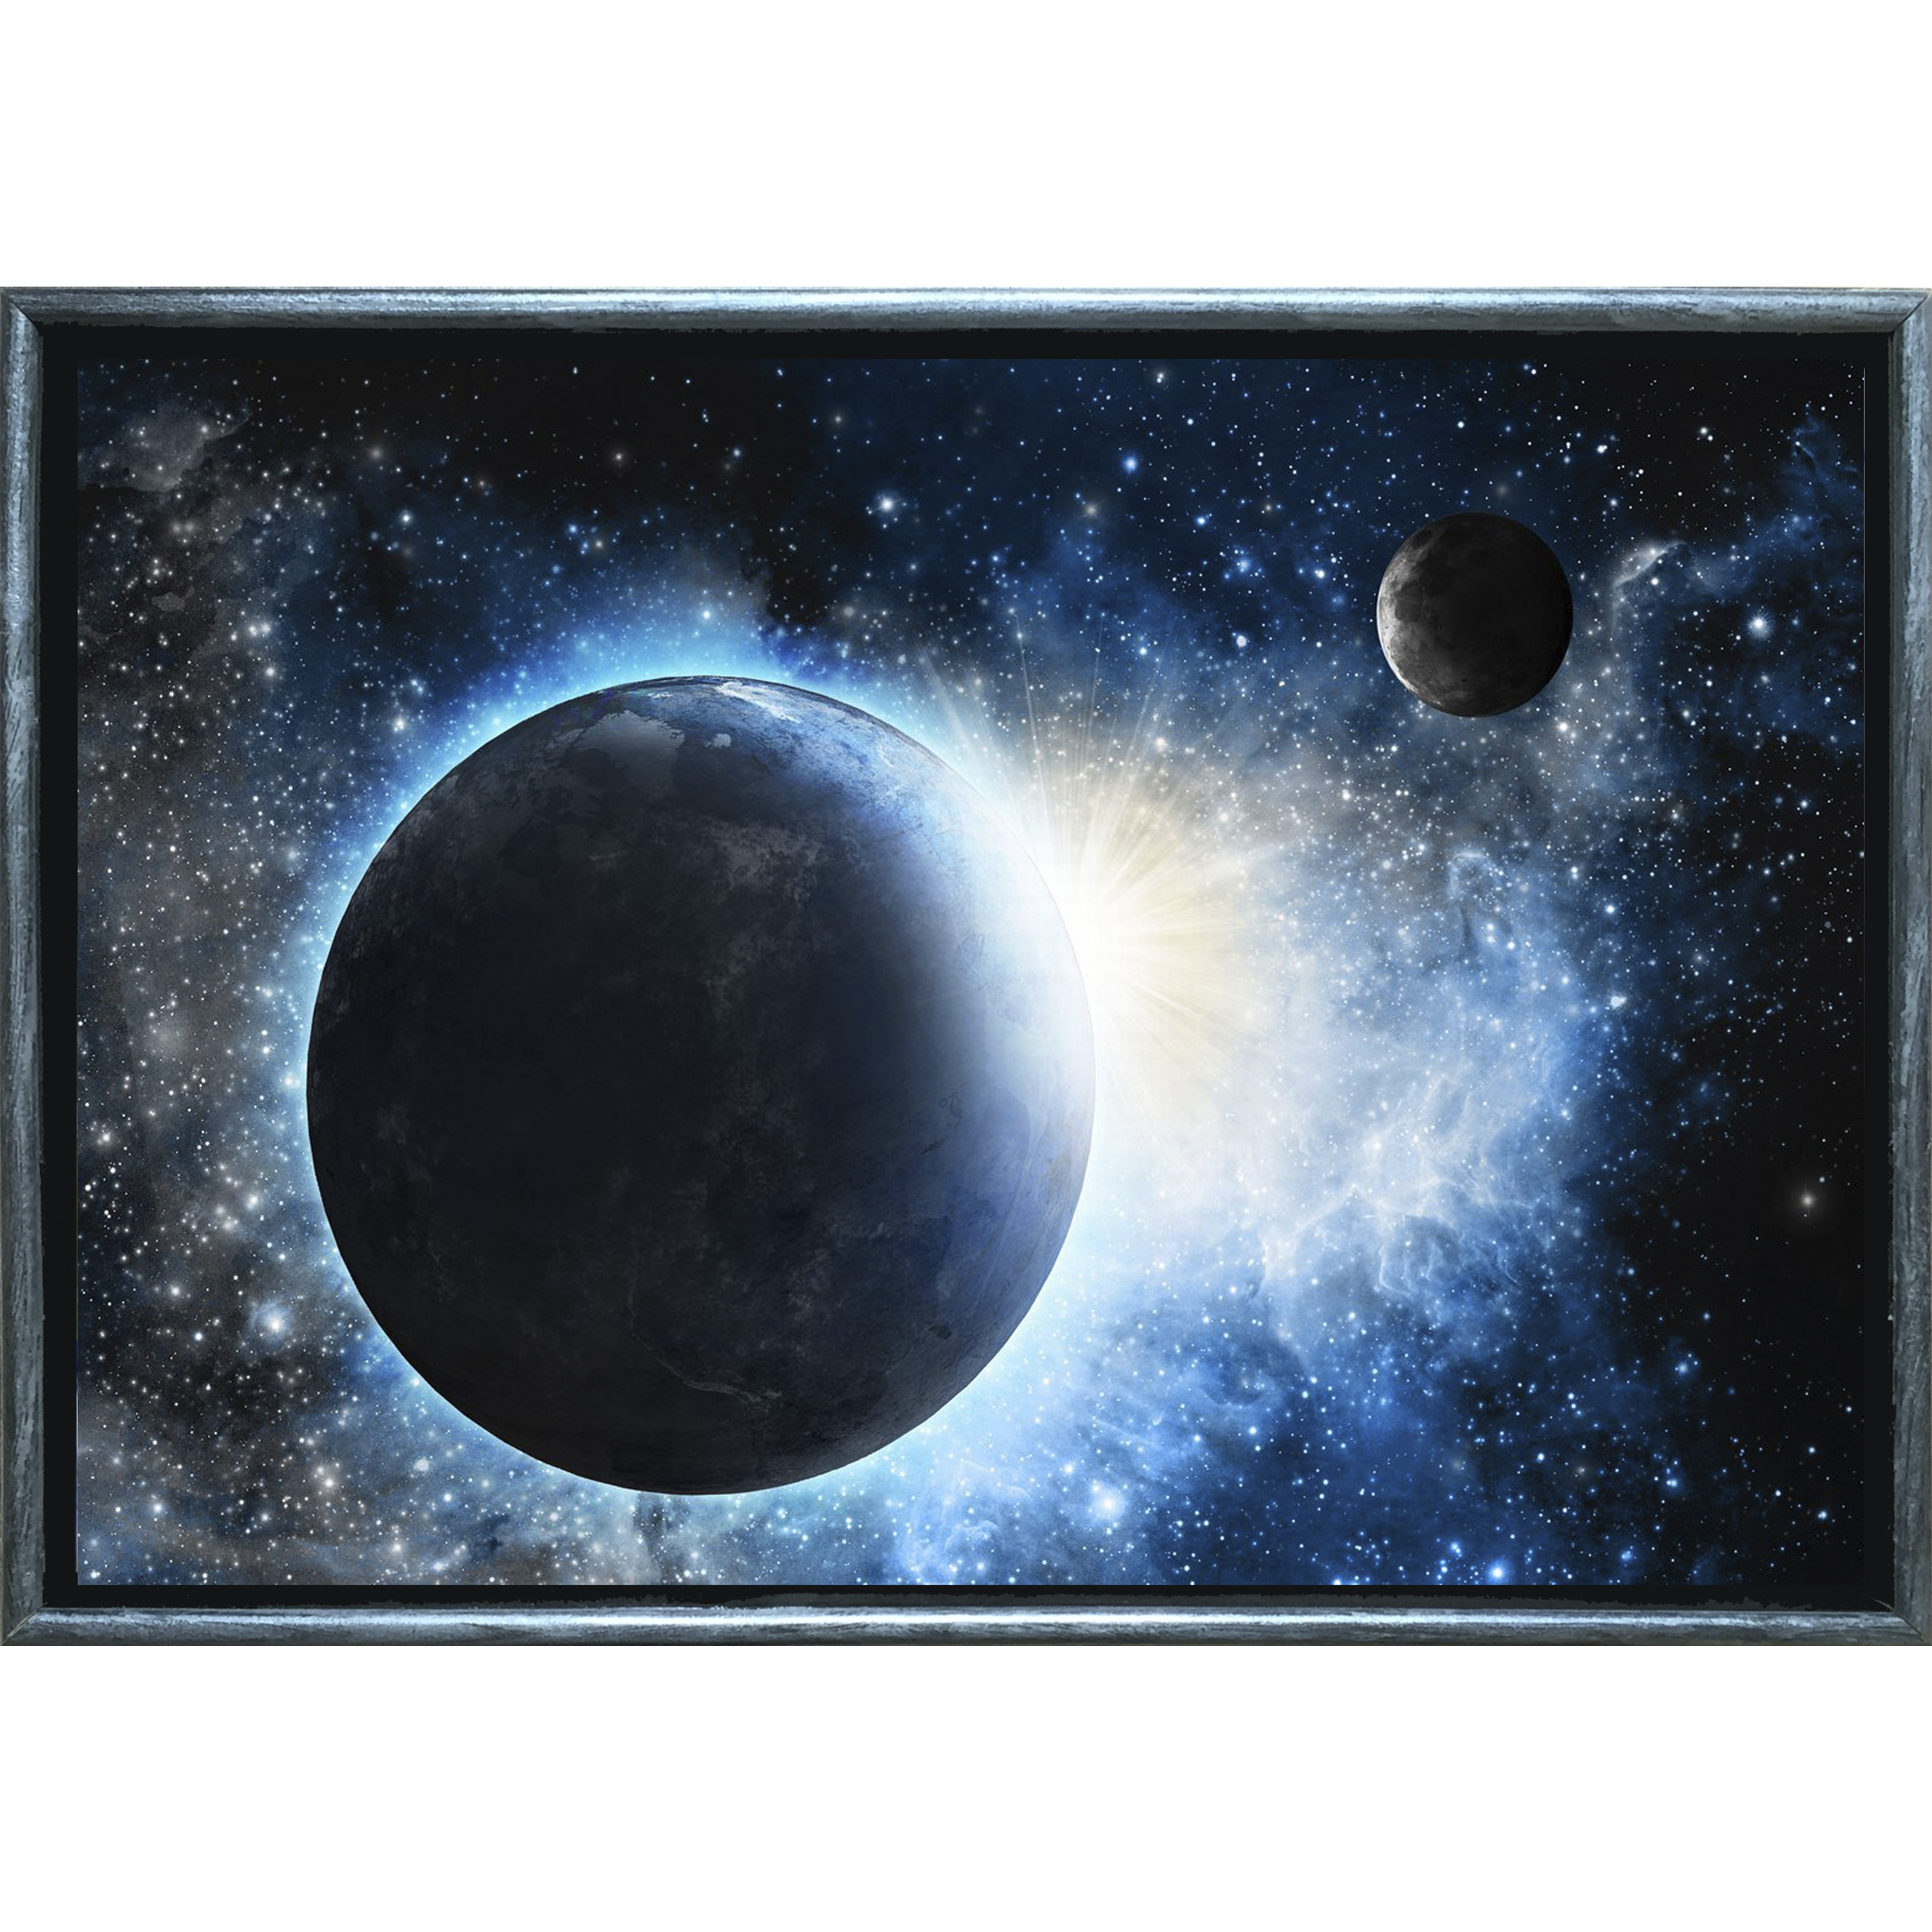 Startonight Silver Luxury Framed Canvas Wall Art Silver Winter on the Lake, Dual View Surprise Illuminated Landscapes Artwork 5 Stars Gift 19.69 x 27.56 inch